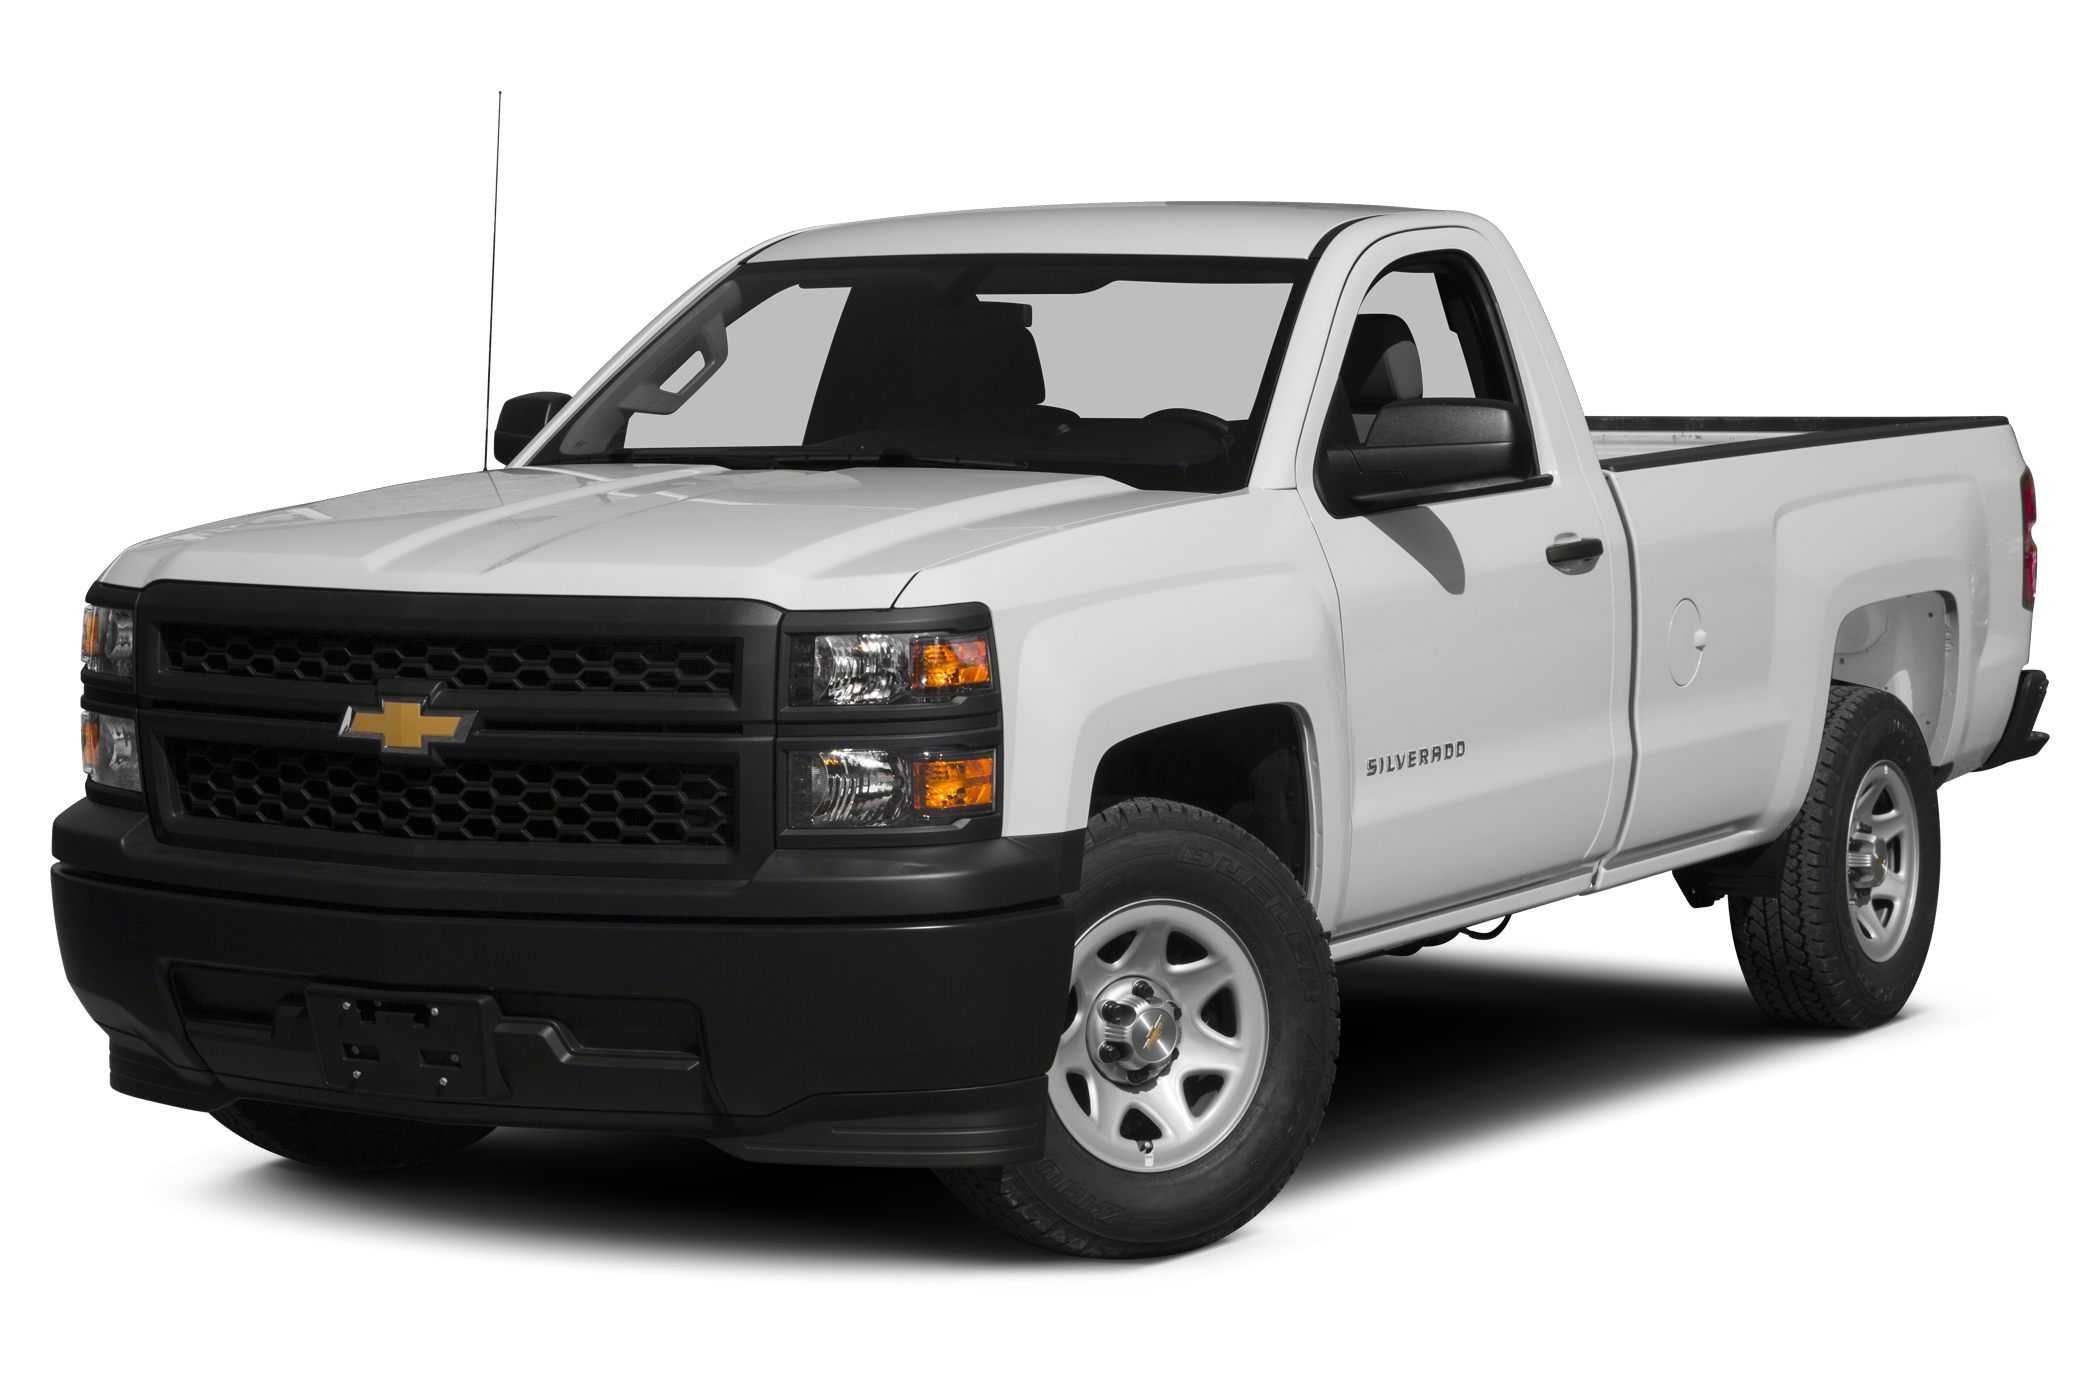 2014 Chevrolet Silverado 1500 Work Truck 1WT Regular Cab Pickup for sale in Baton Rouge for $27,145 with 0 miles.